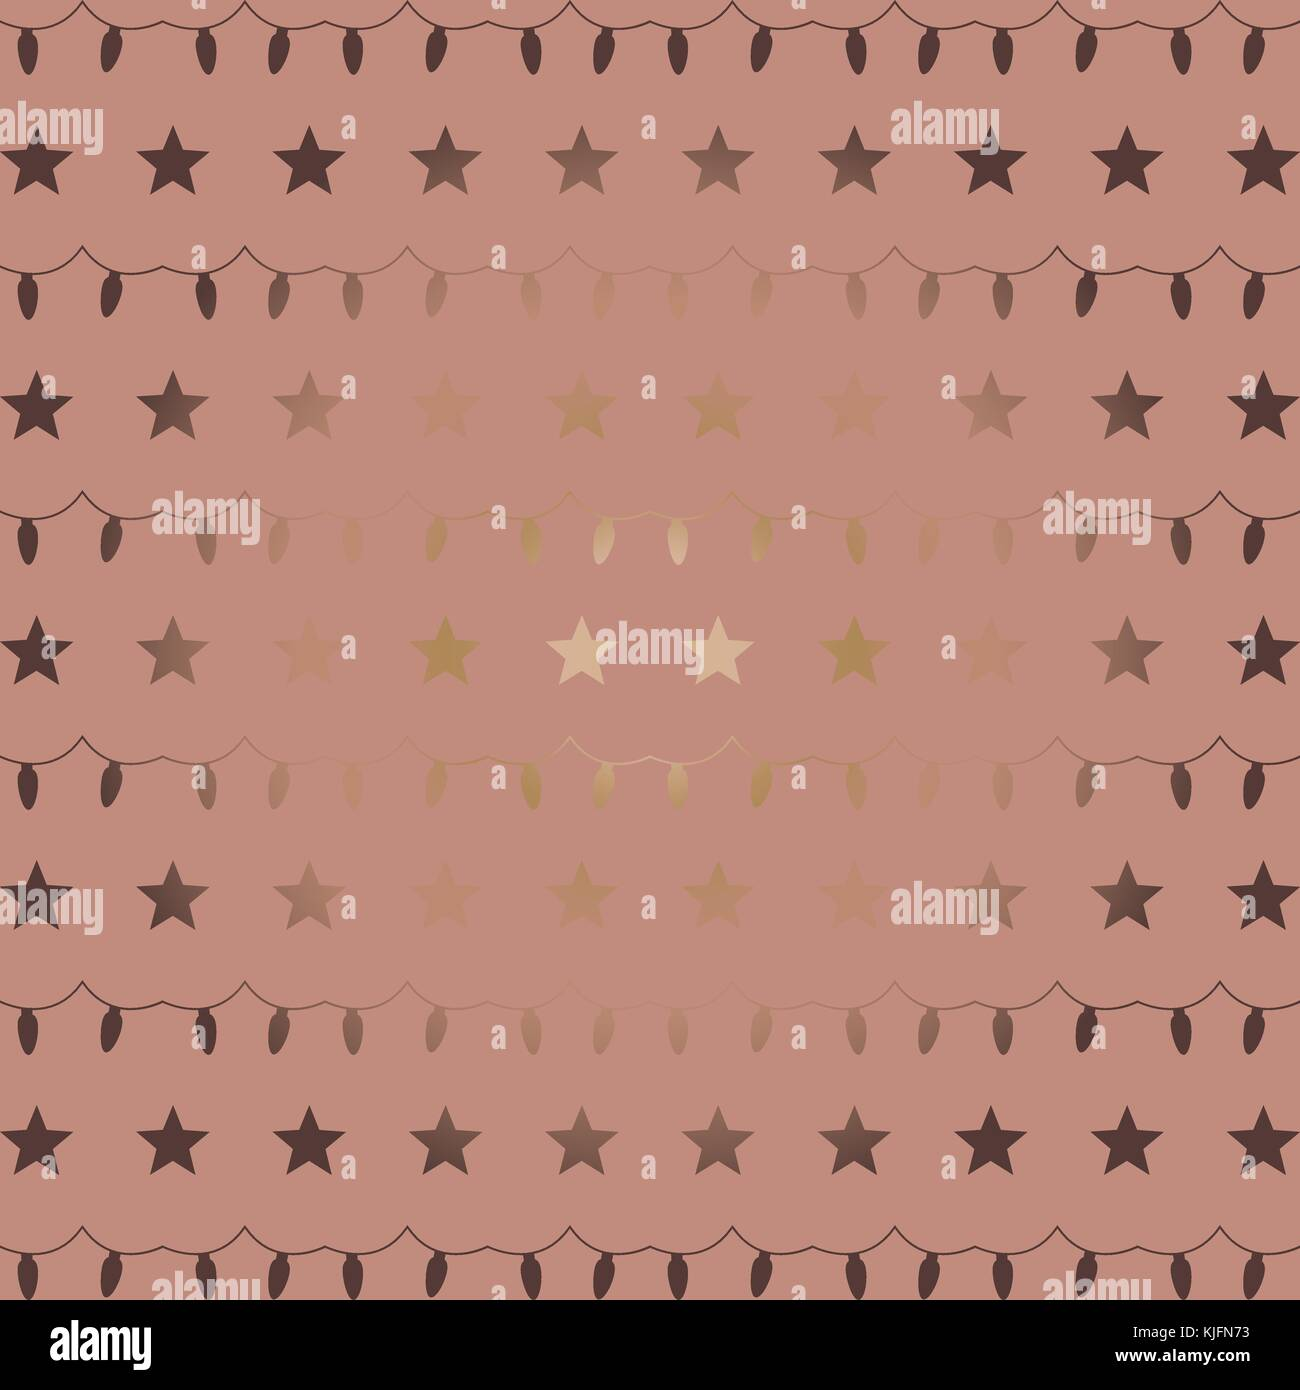 cute pattern for new year and merry christmas themes vector illustration